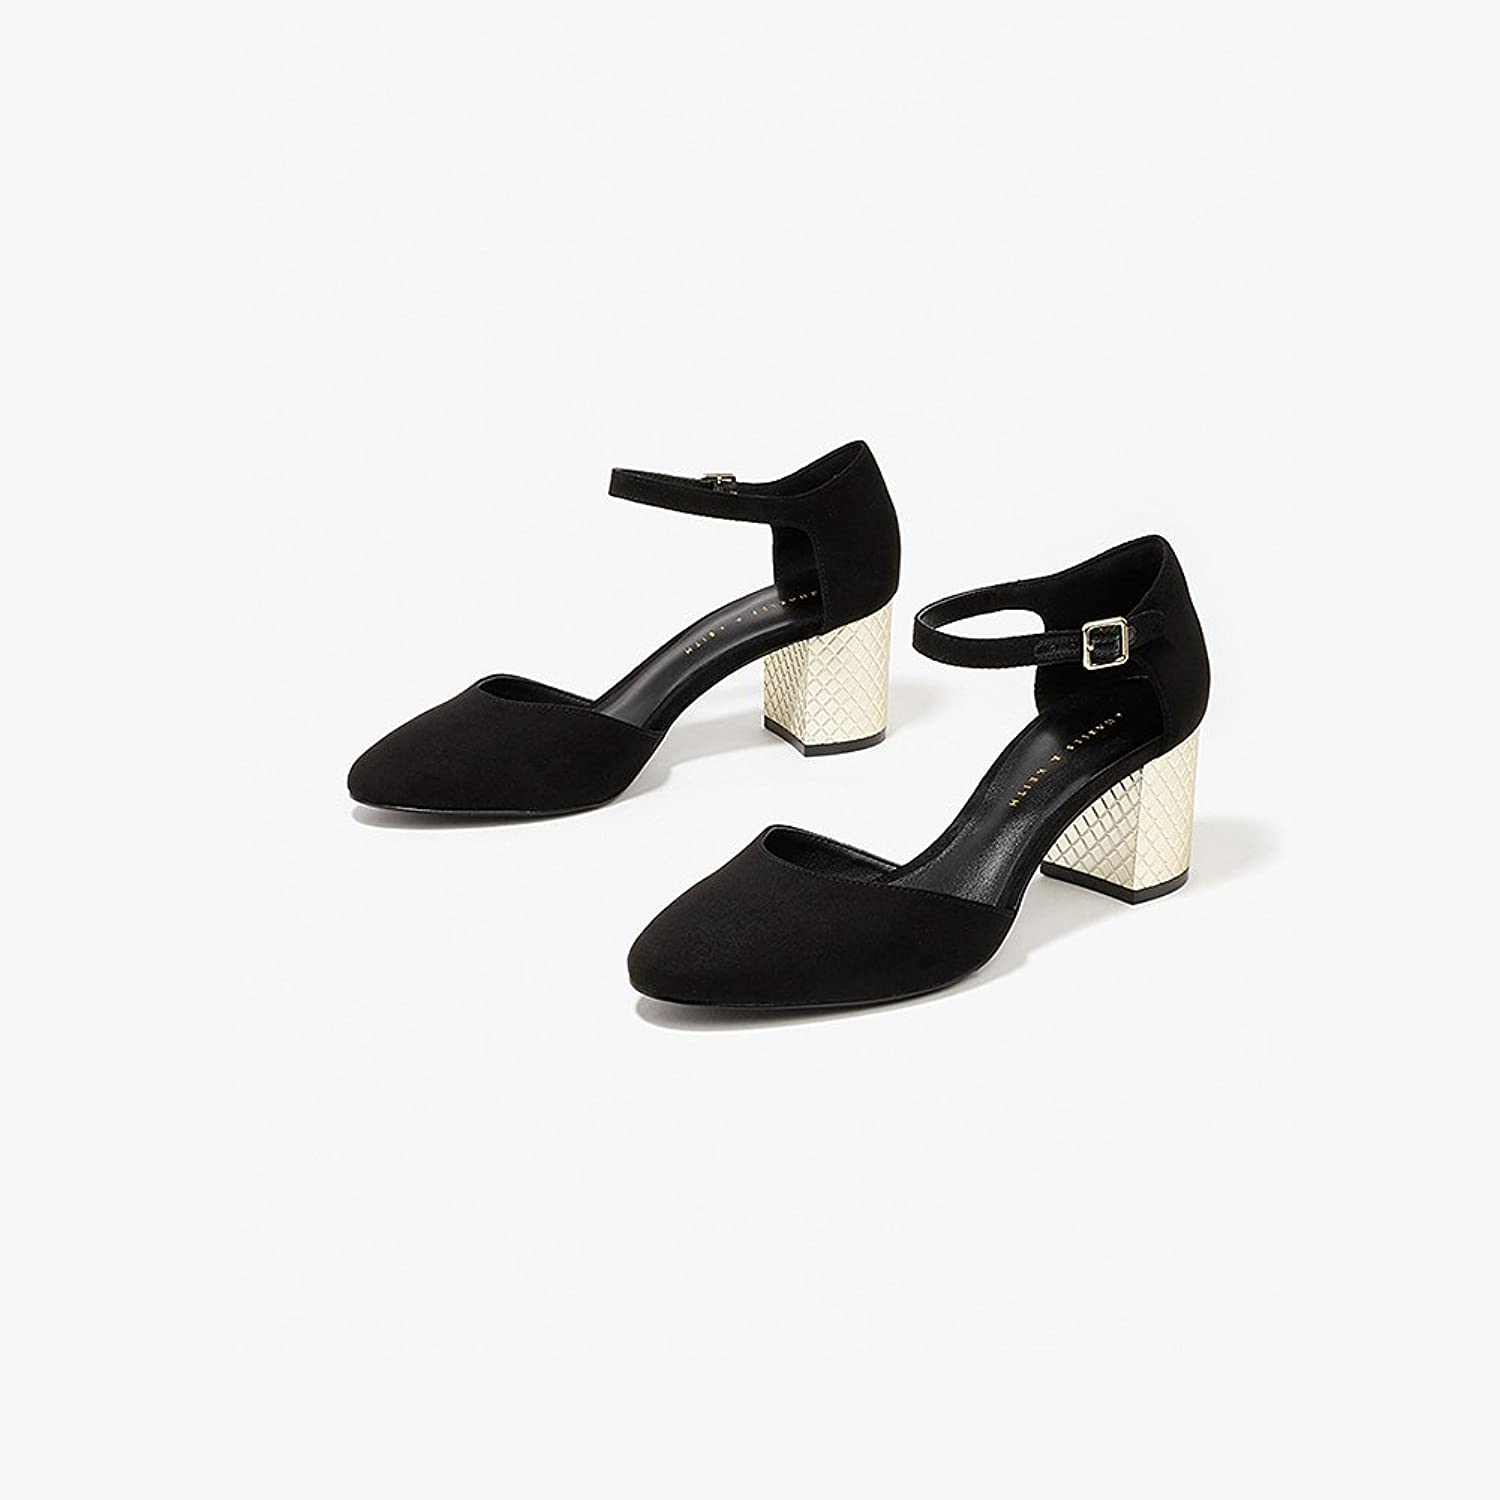 XUERUI Retro Thick with Sexy and Comfortable Word with Ladies in High Heels (color   Black, Size   EU36 UK4 CN36)